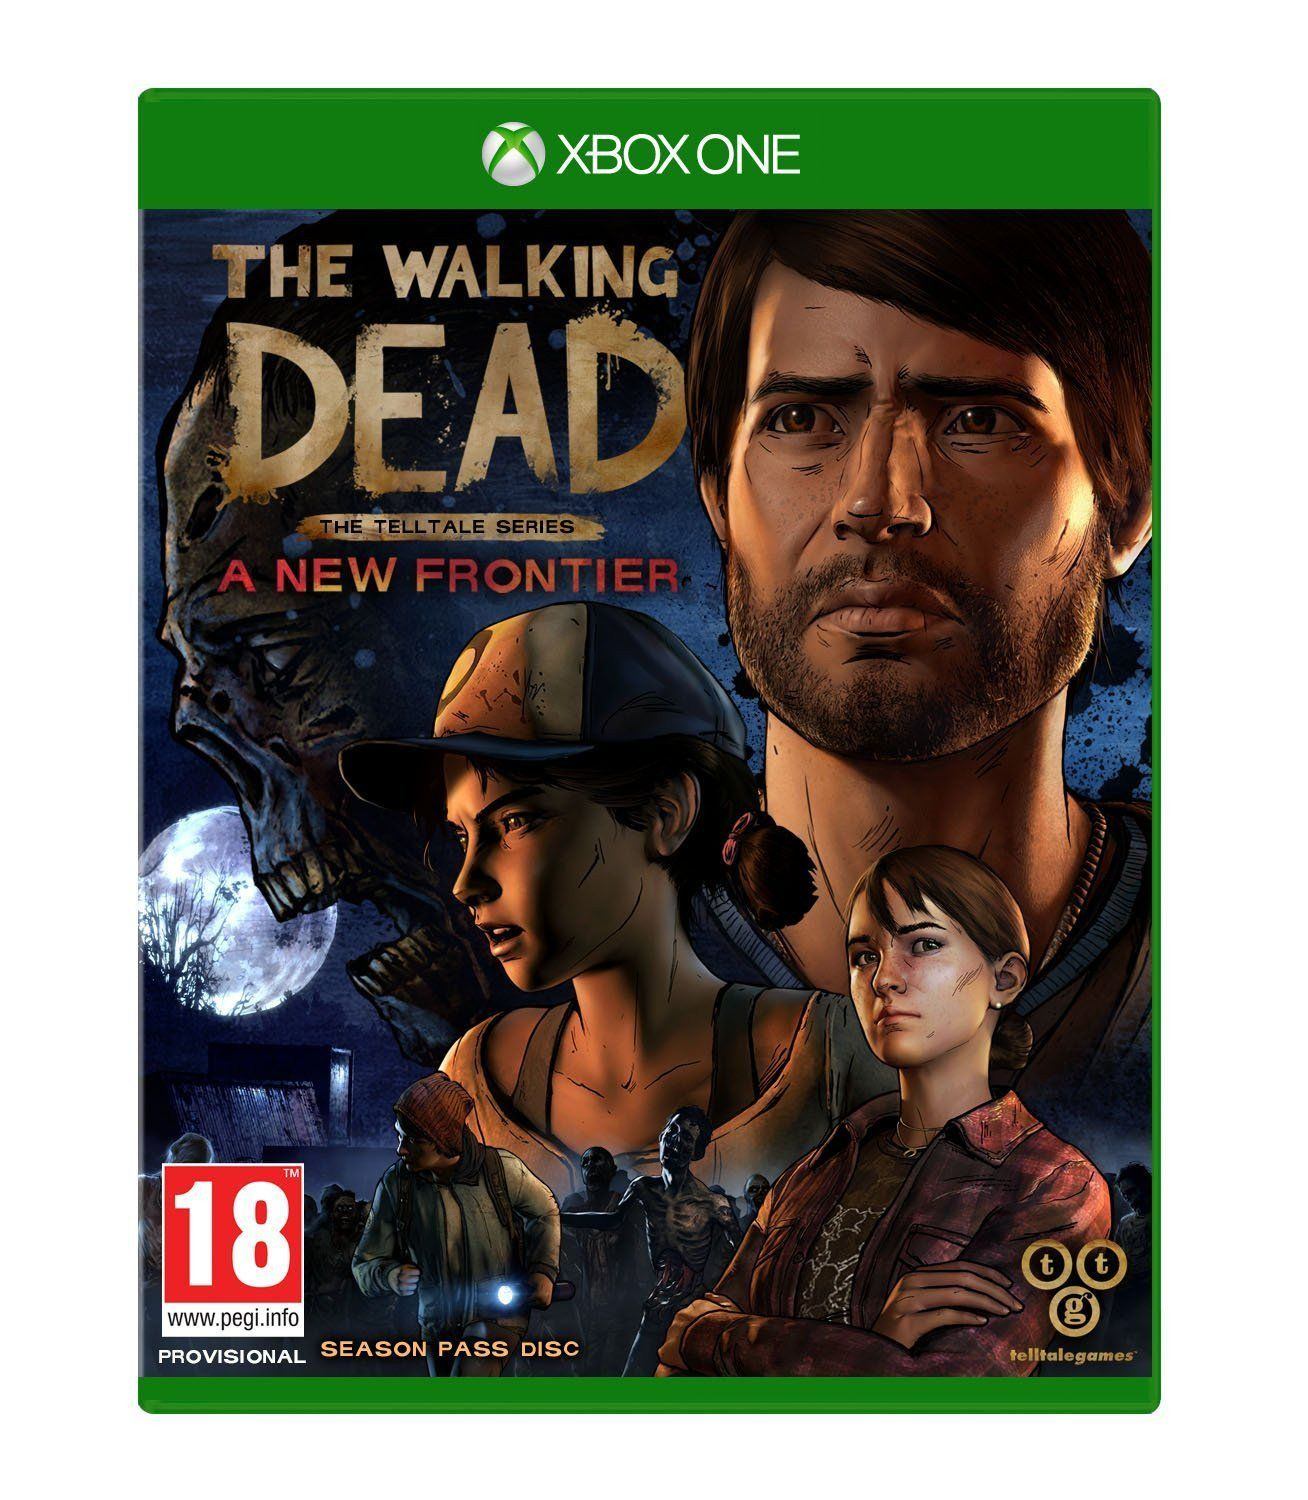 The Walking Dead - The Telltale Series: A New Frontier - Xbox One